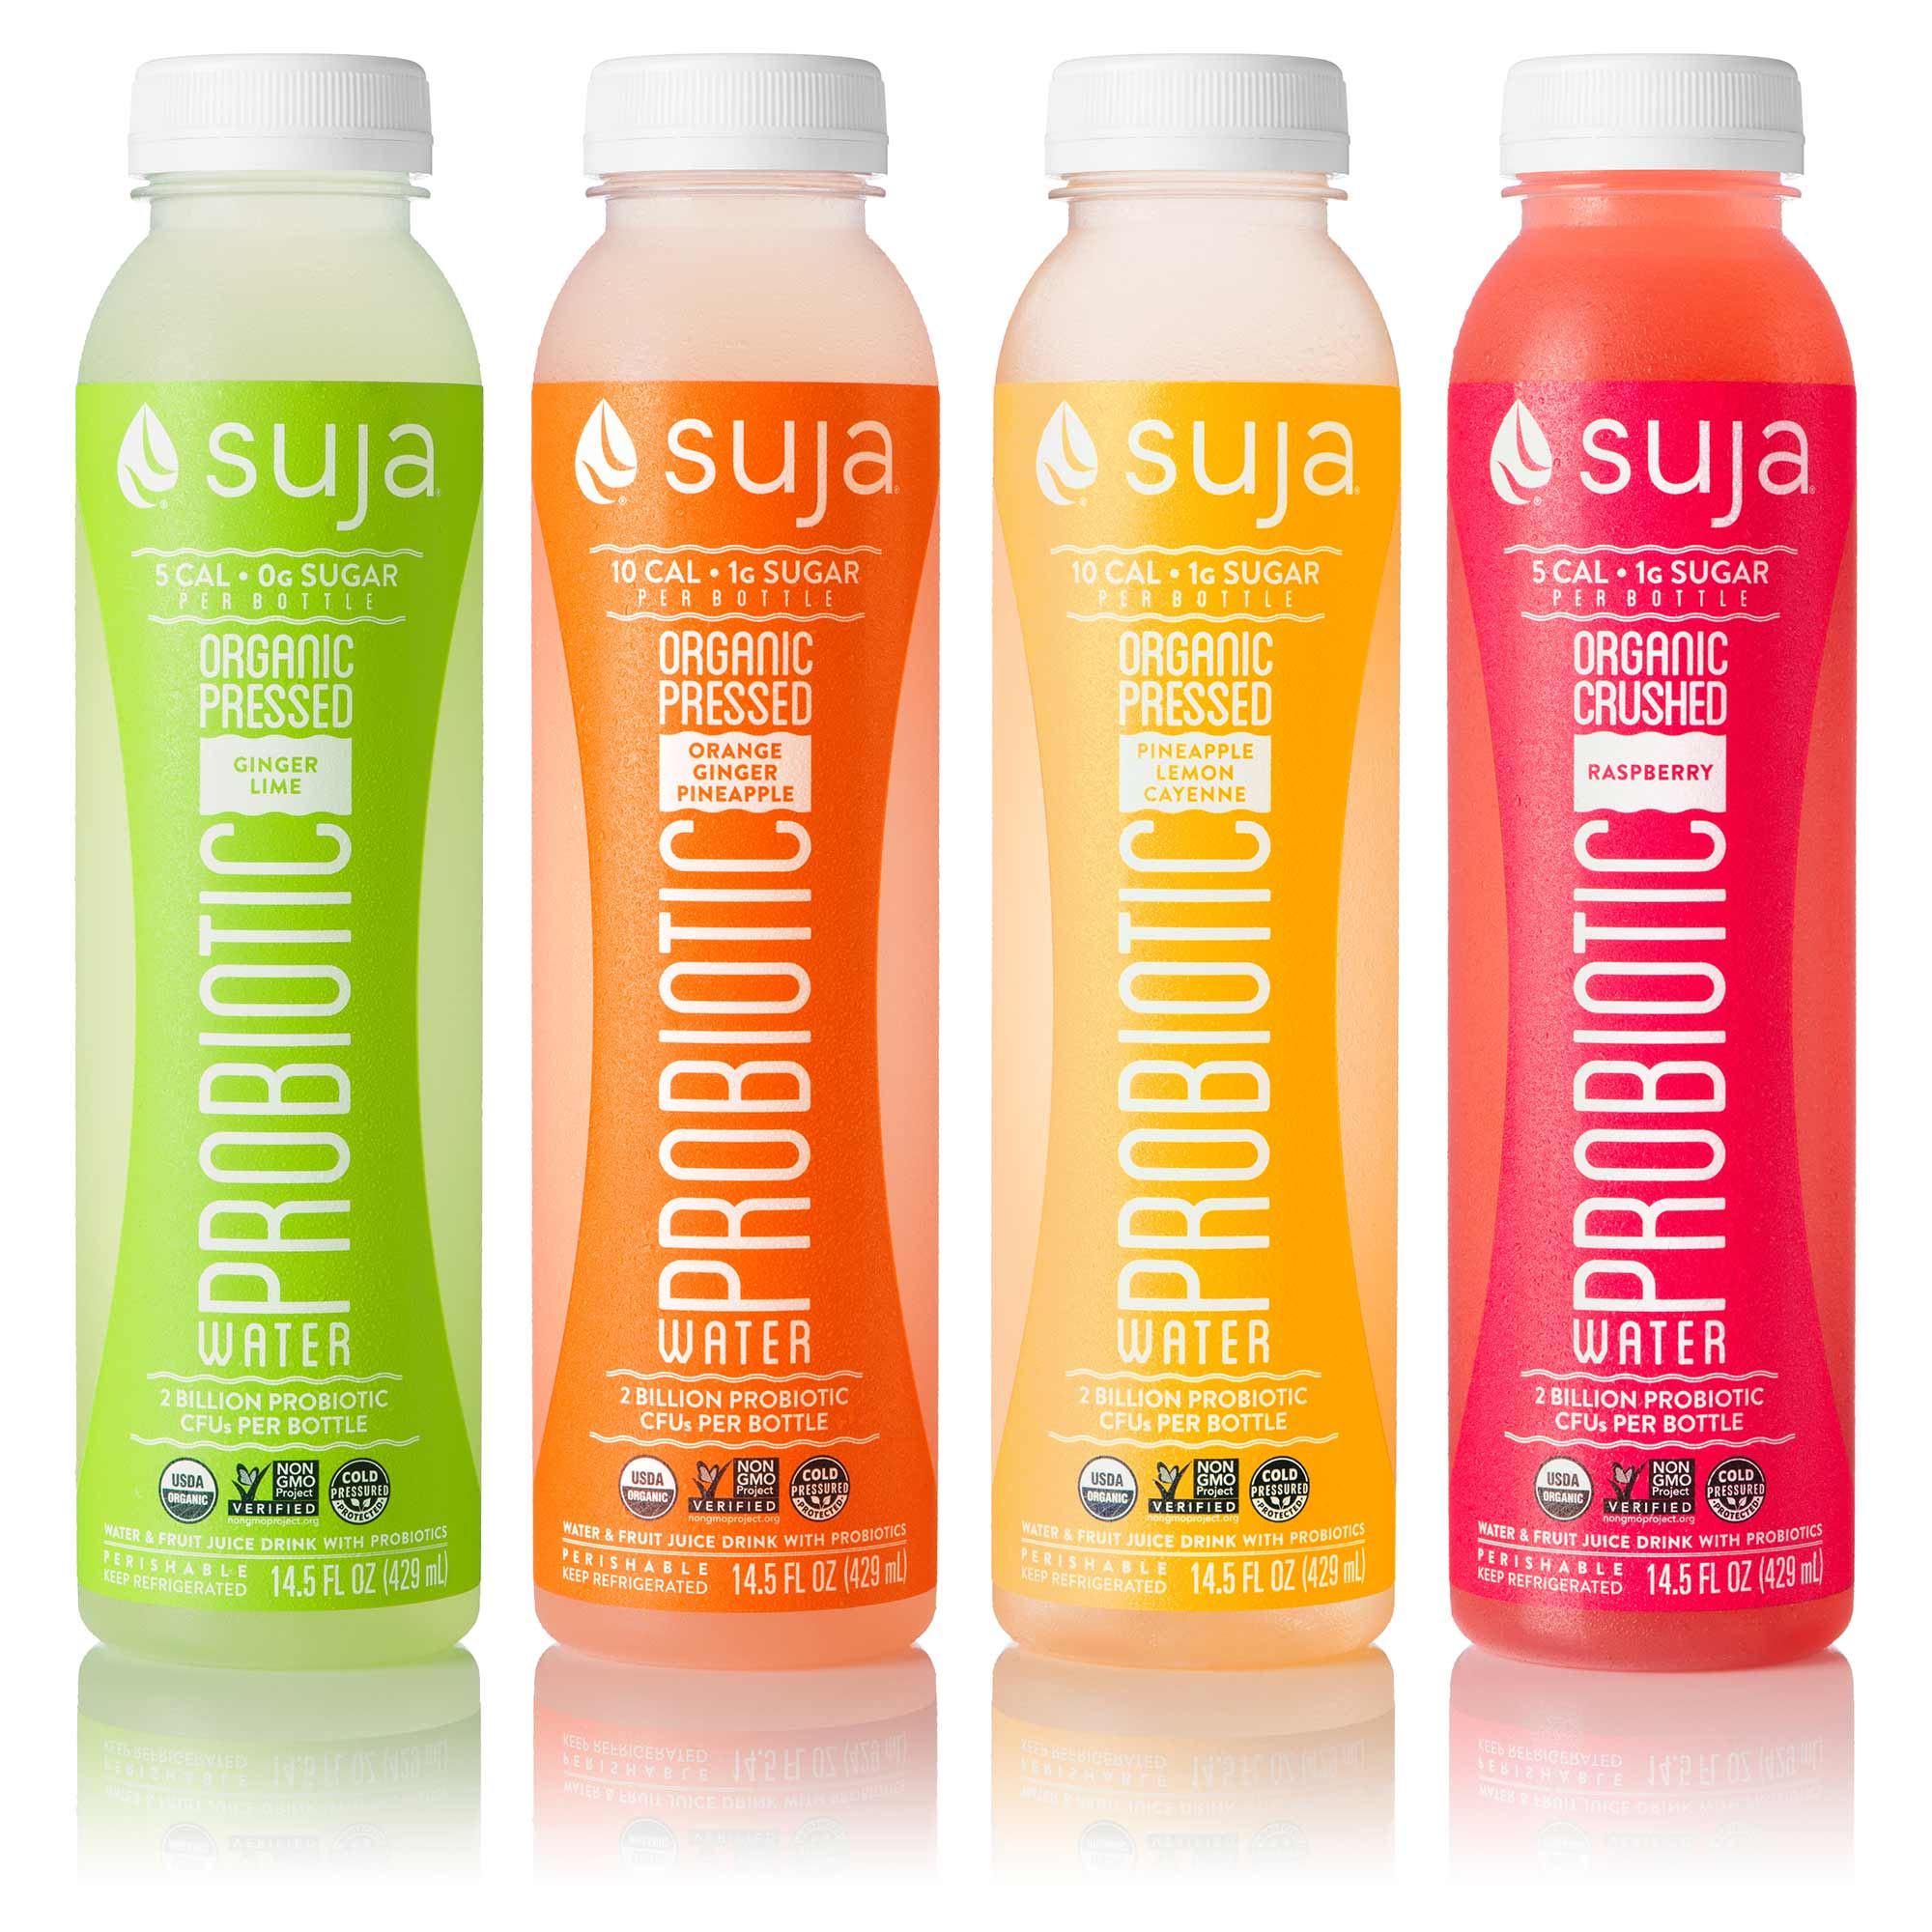 New innovations we designed for Suja hitting Target shelves in February 2016.